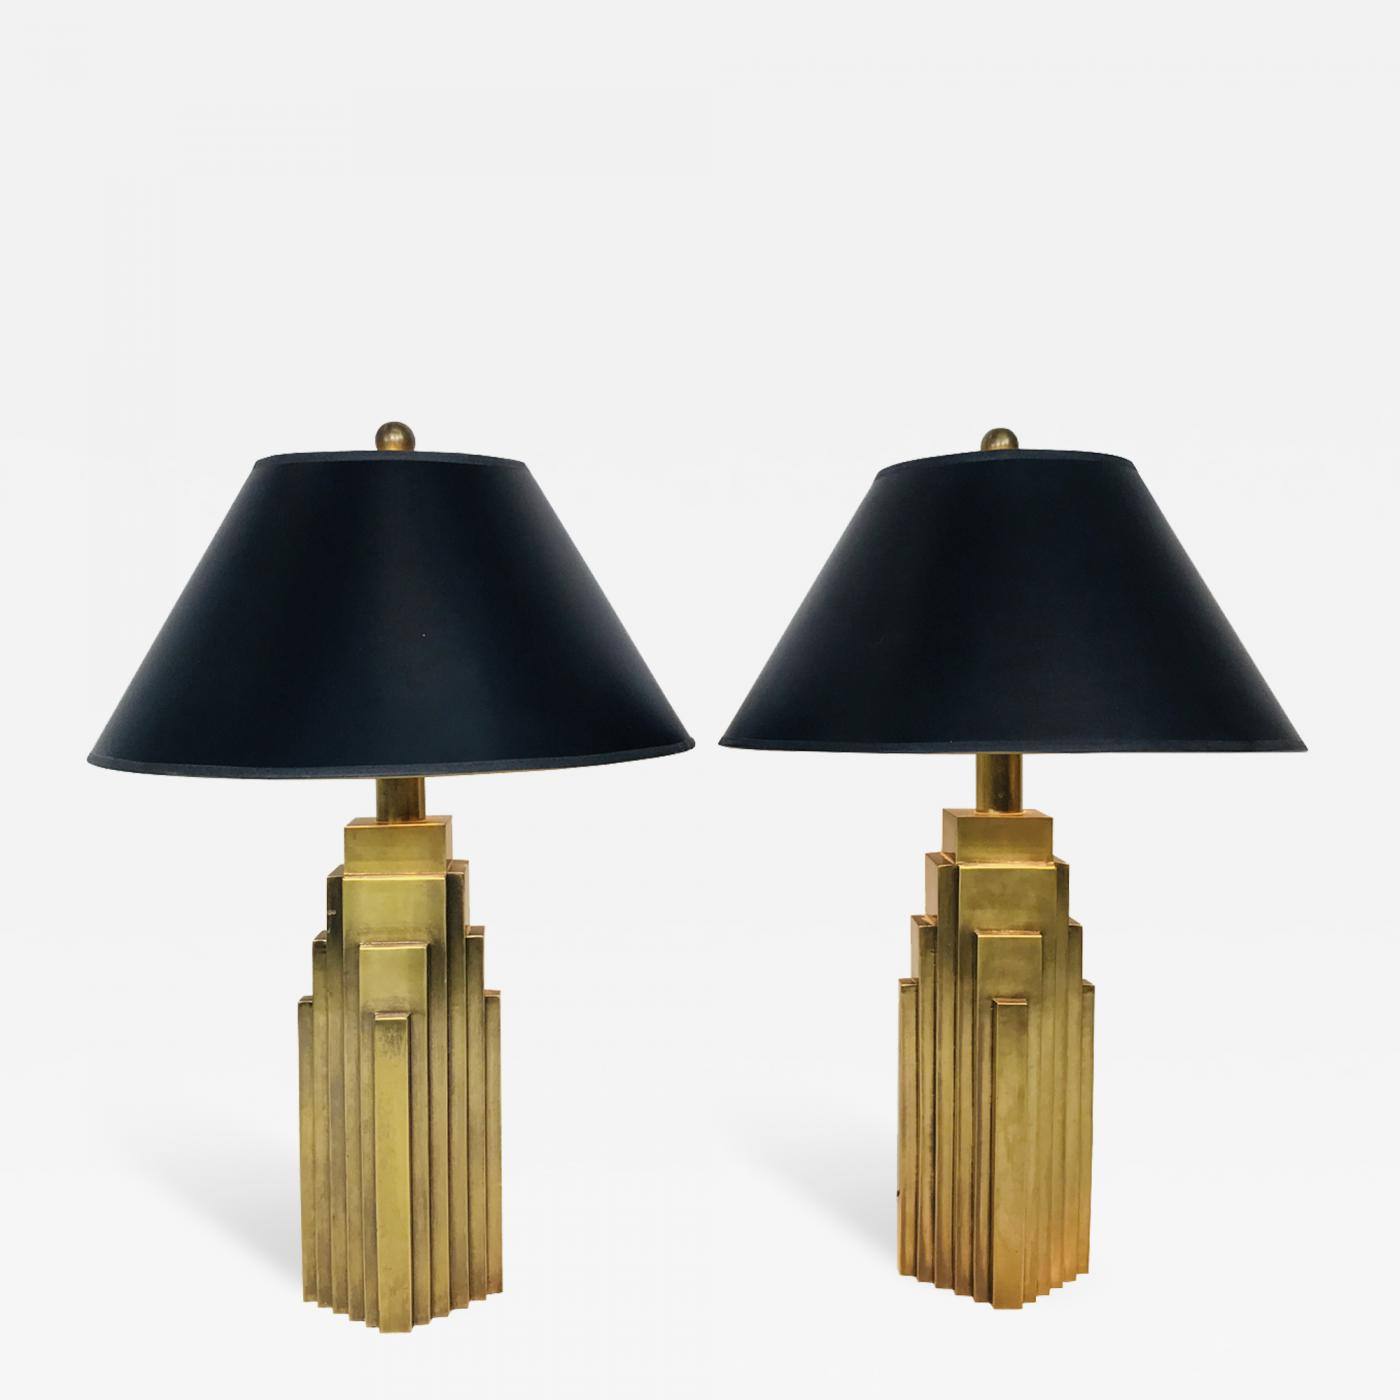 Chapman Mfg Co Pair Of Brass Skyscraper Table Lamps With Black Shades By Chapman